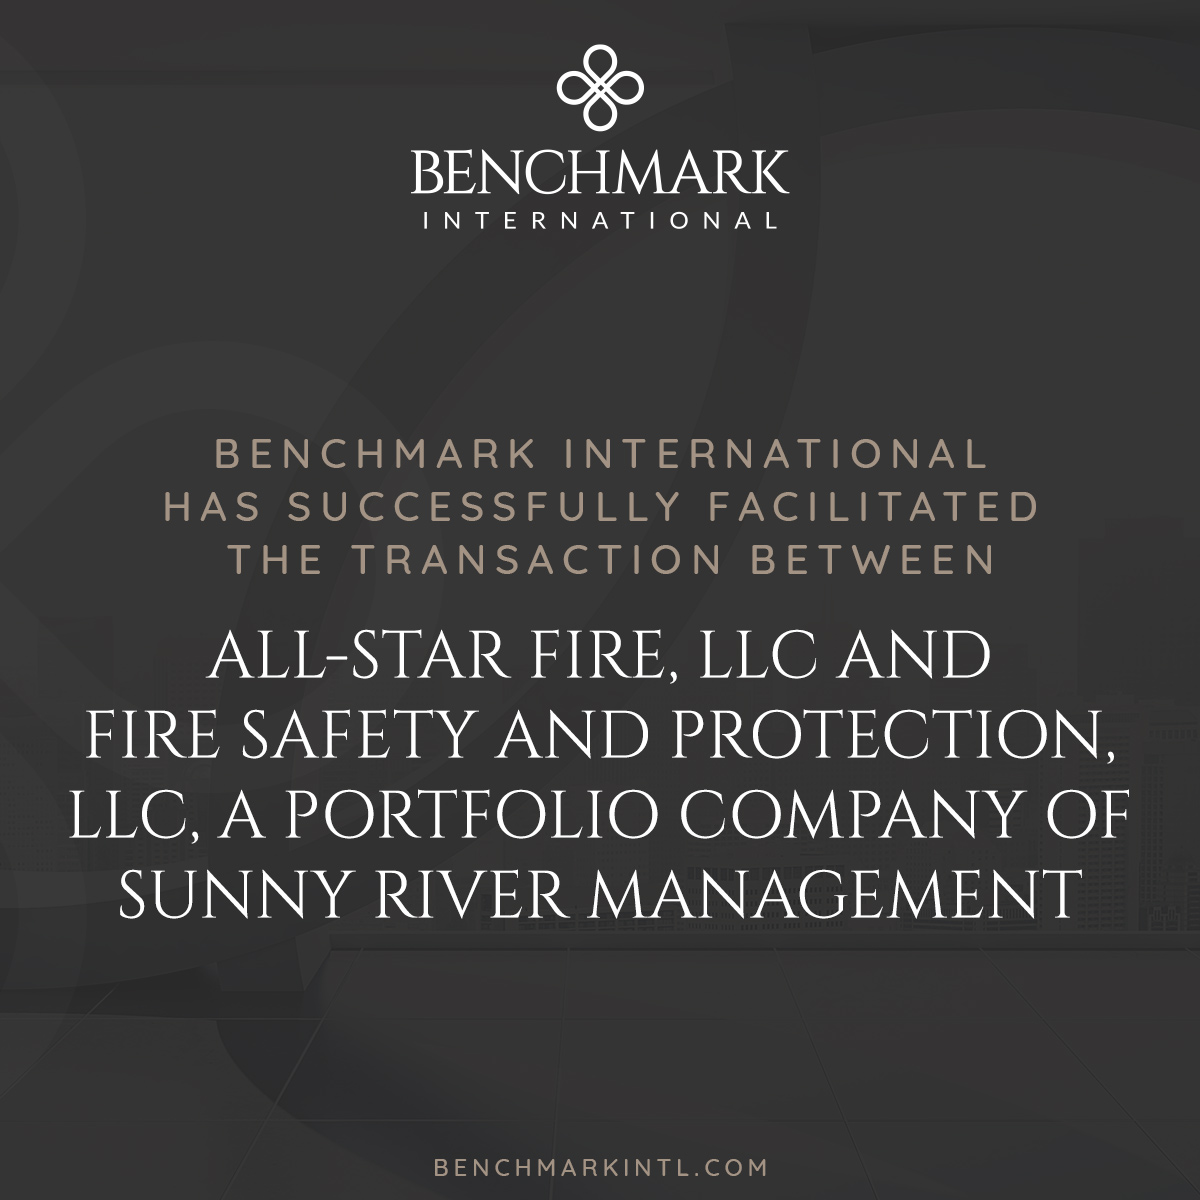 All_Star_Fire_&_Fire_Safety_and_Protection_Social